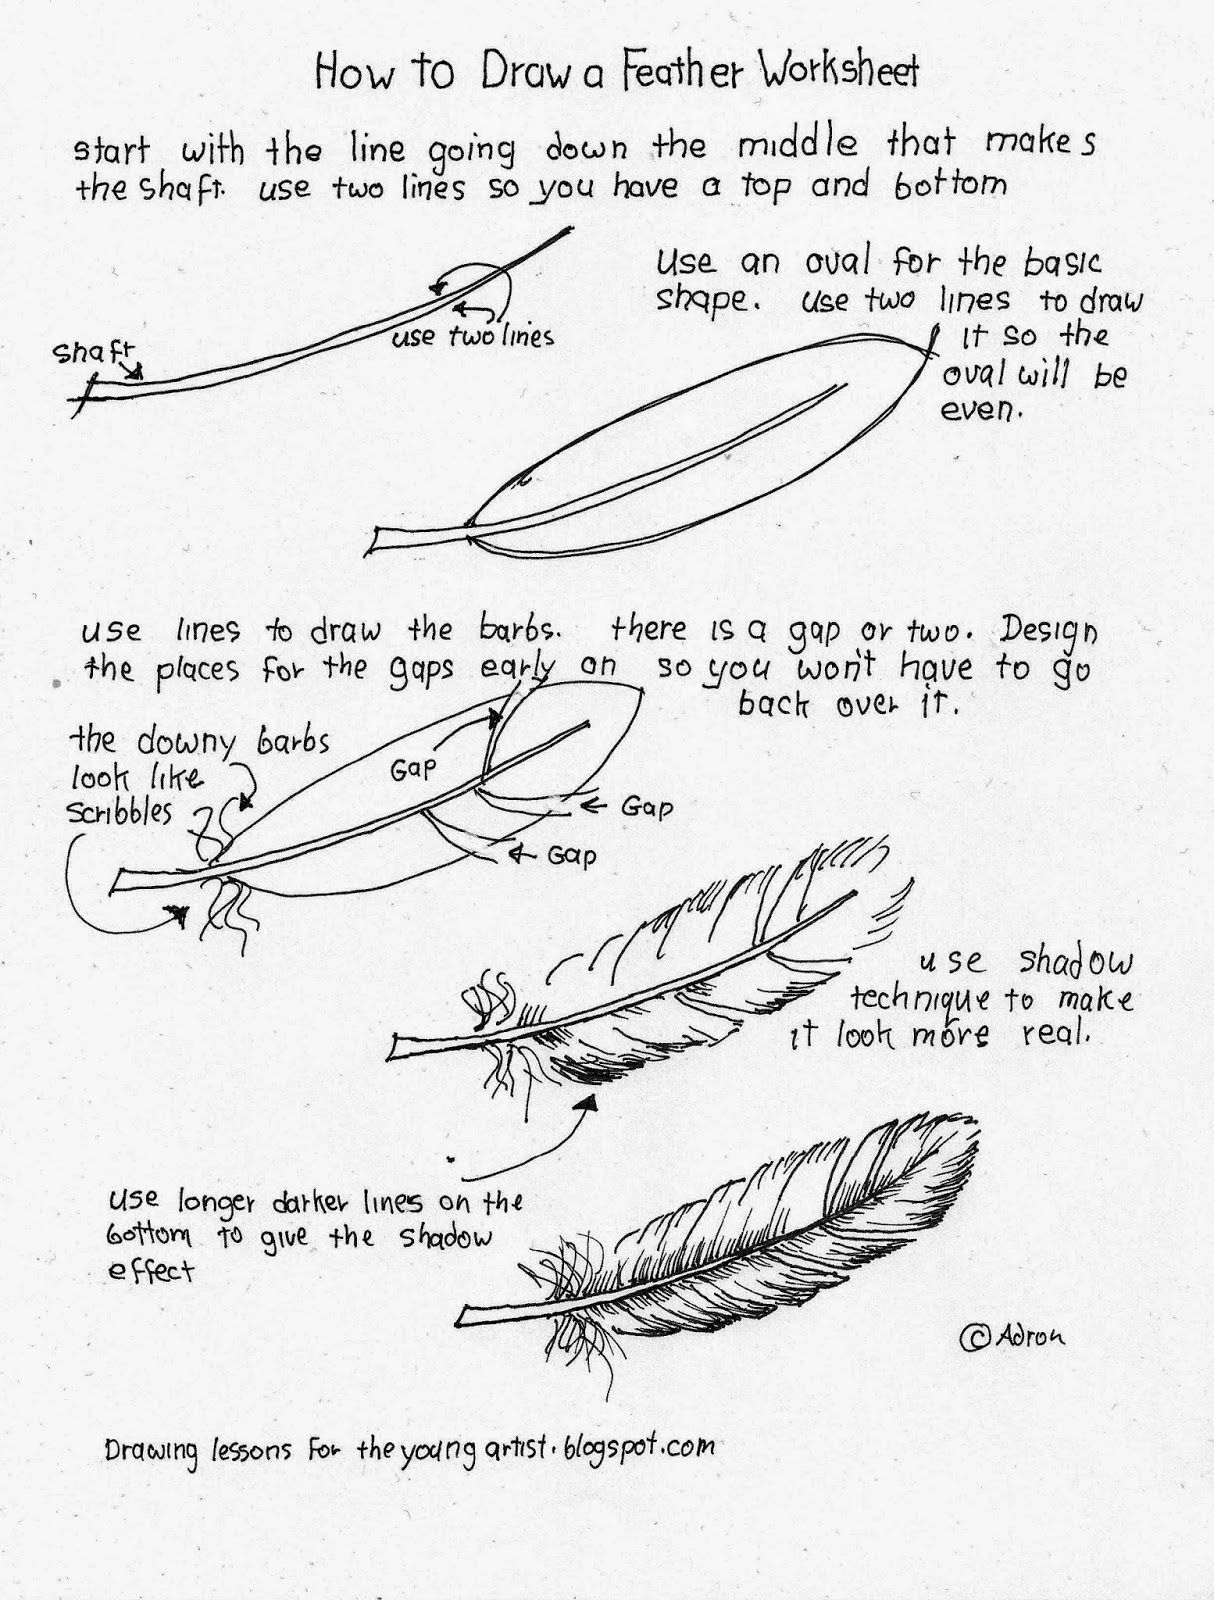 worksheet How To Draw Worksheets how to draw a feather worksheet see more at my blog http http